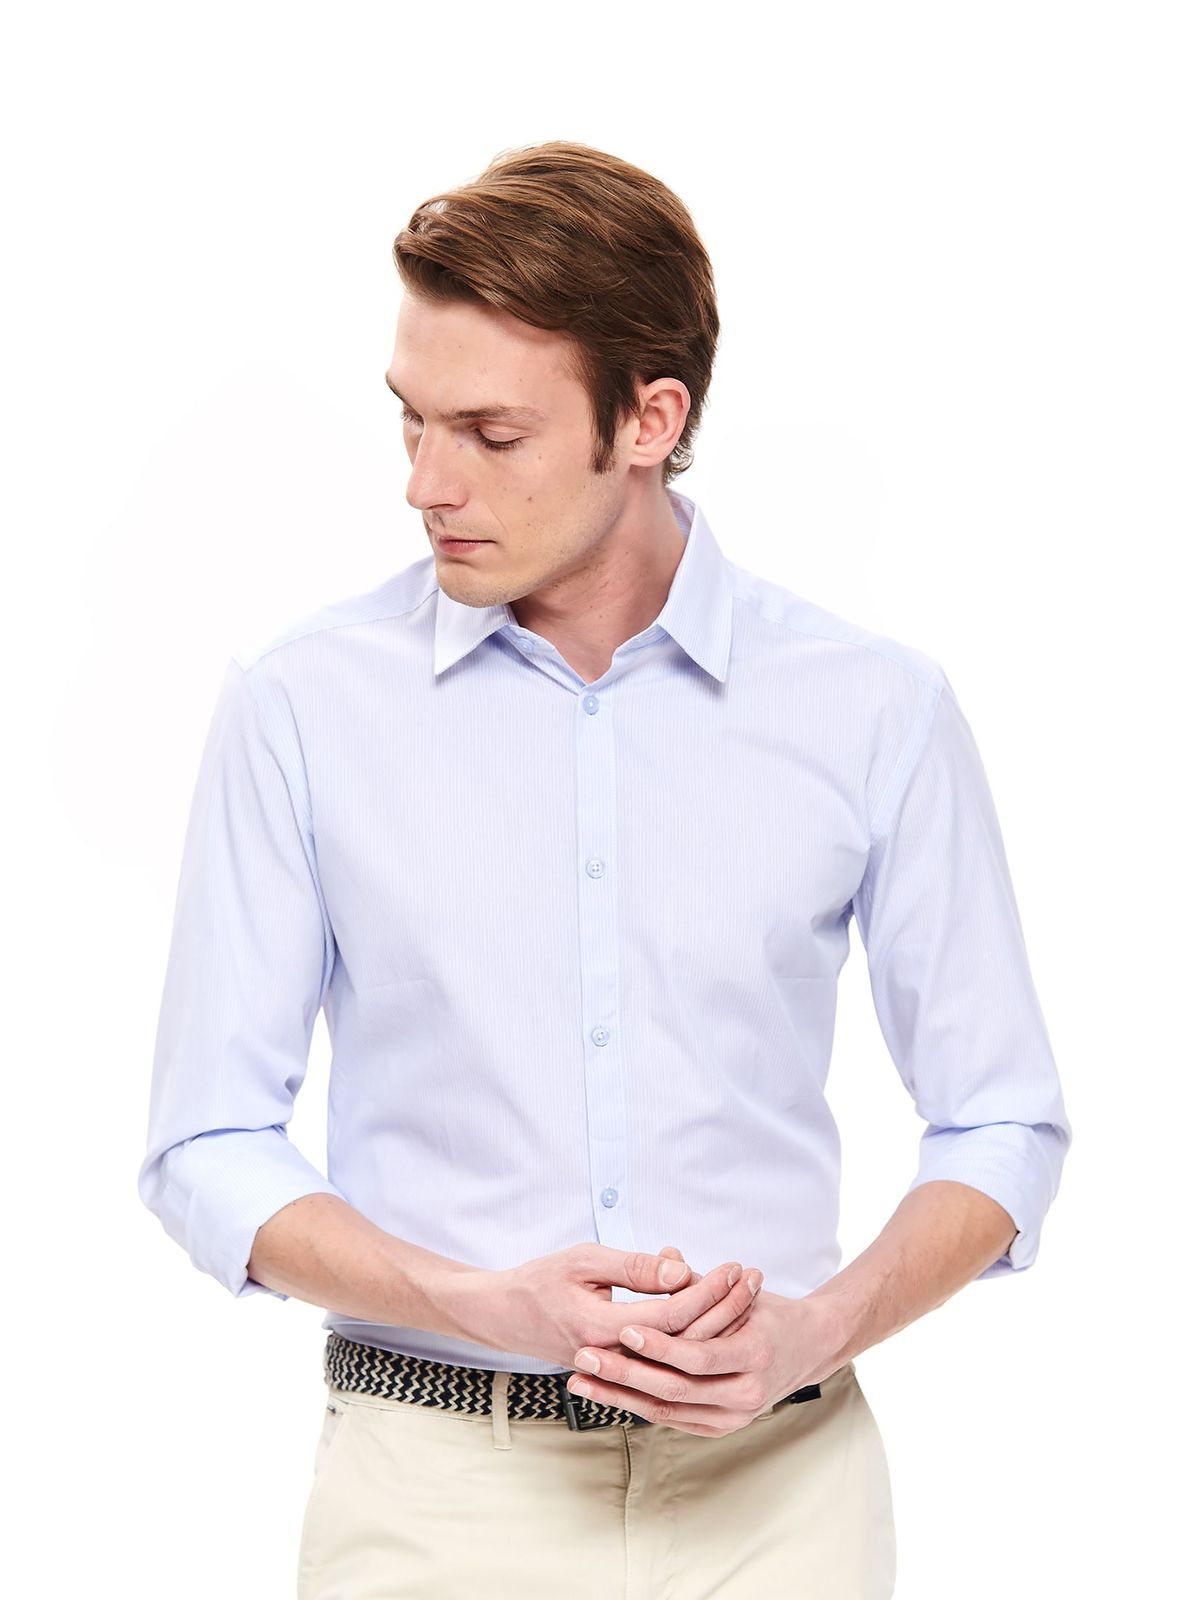 Top Secret MEN'S SHIRT LONG SLEEVE